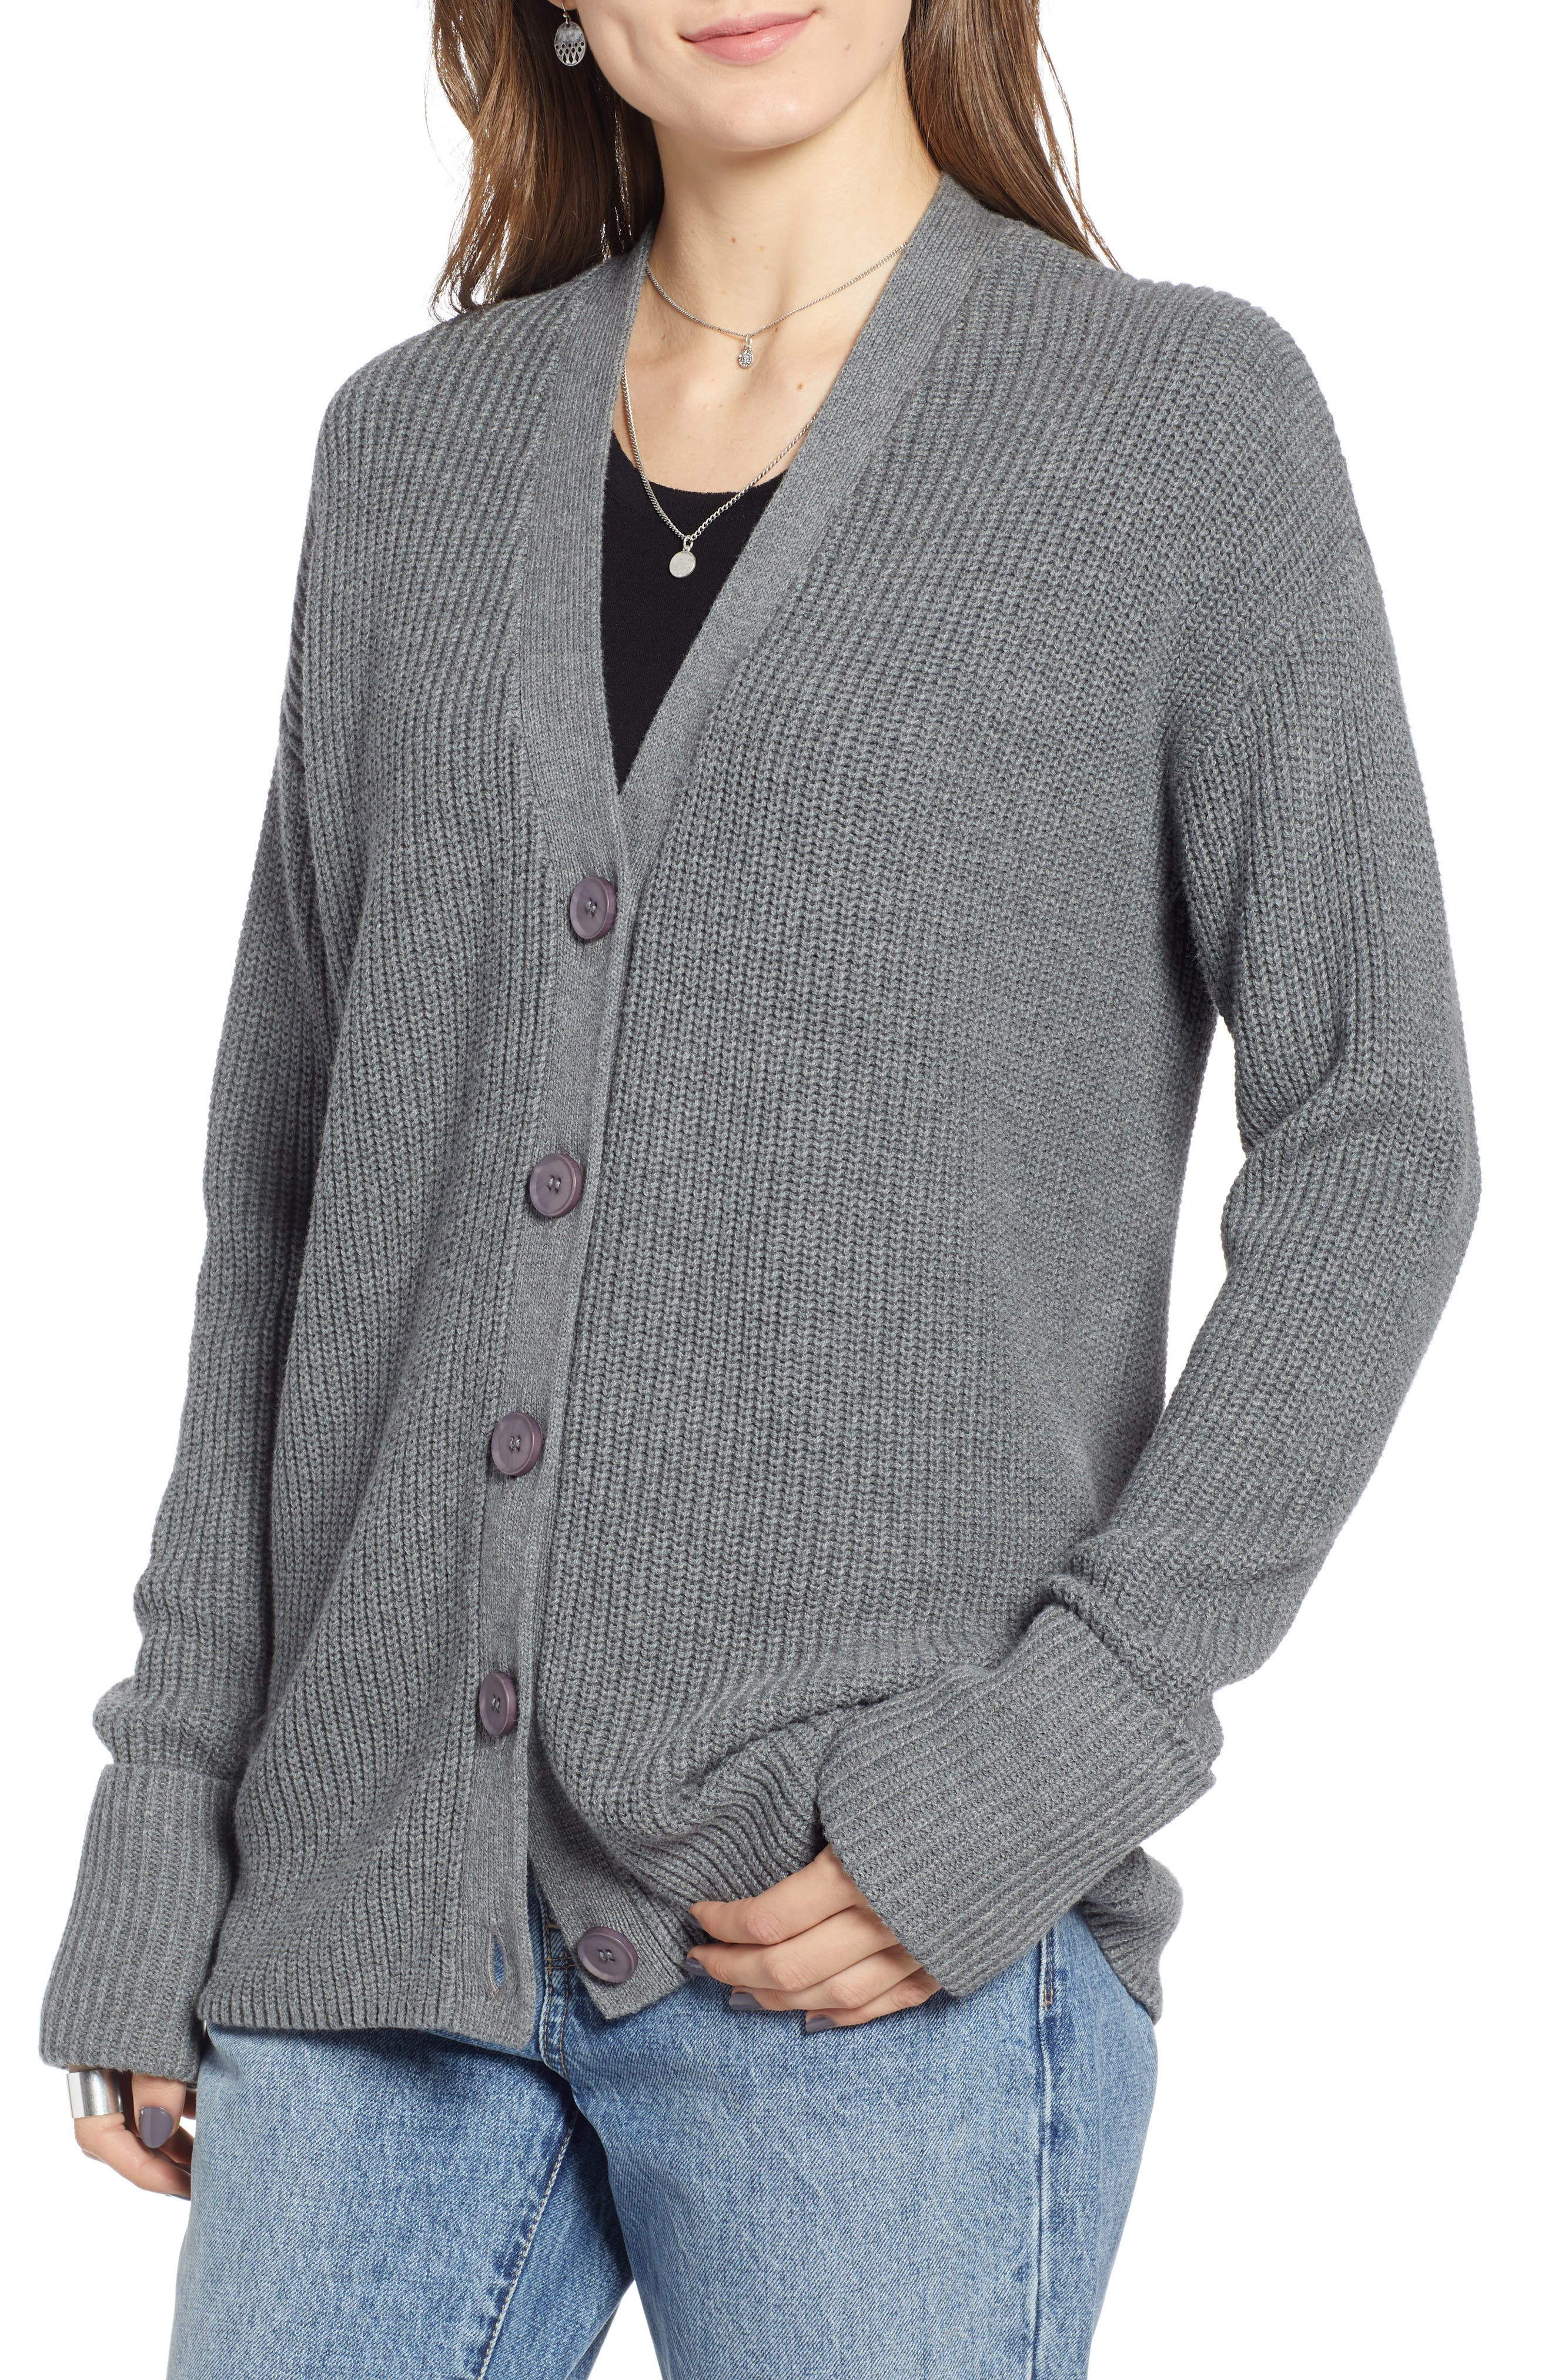 Ribbed Cardigan Sweater,                             Alternate thumbnail 4, color,                             GREY DARK HEATHER